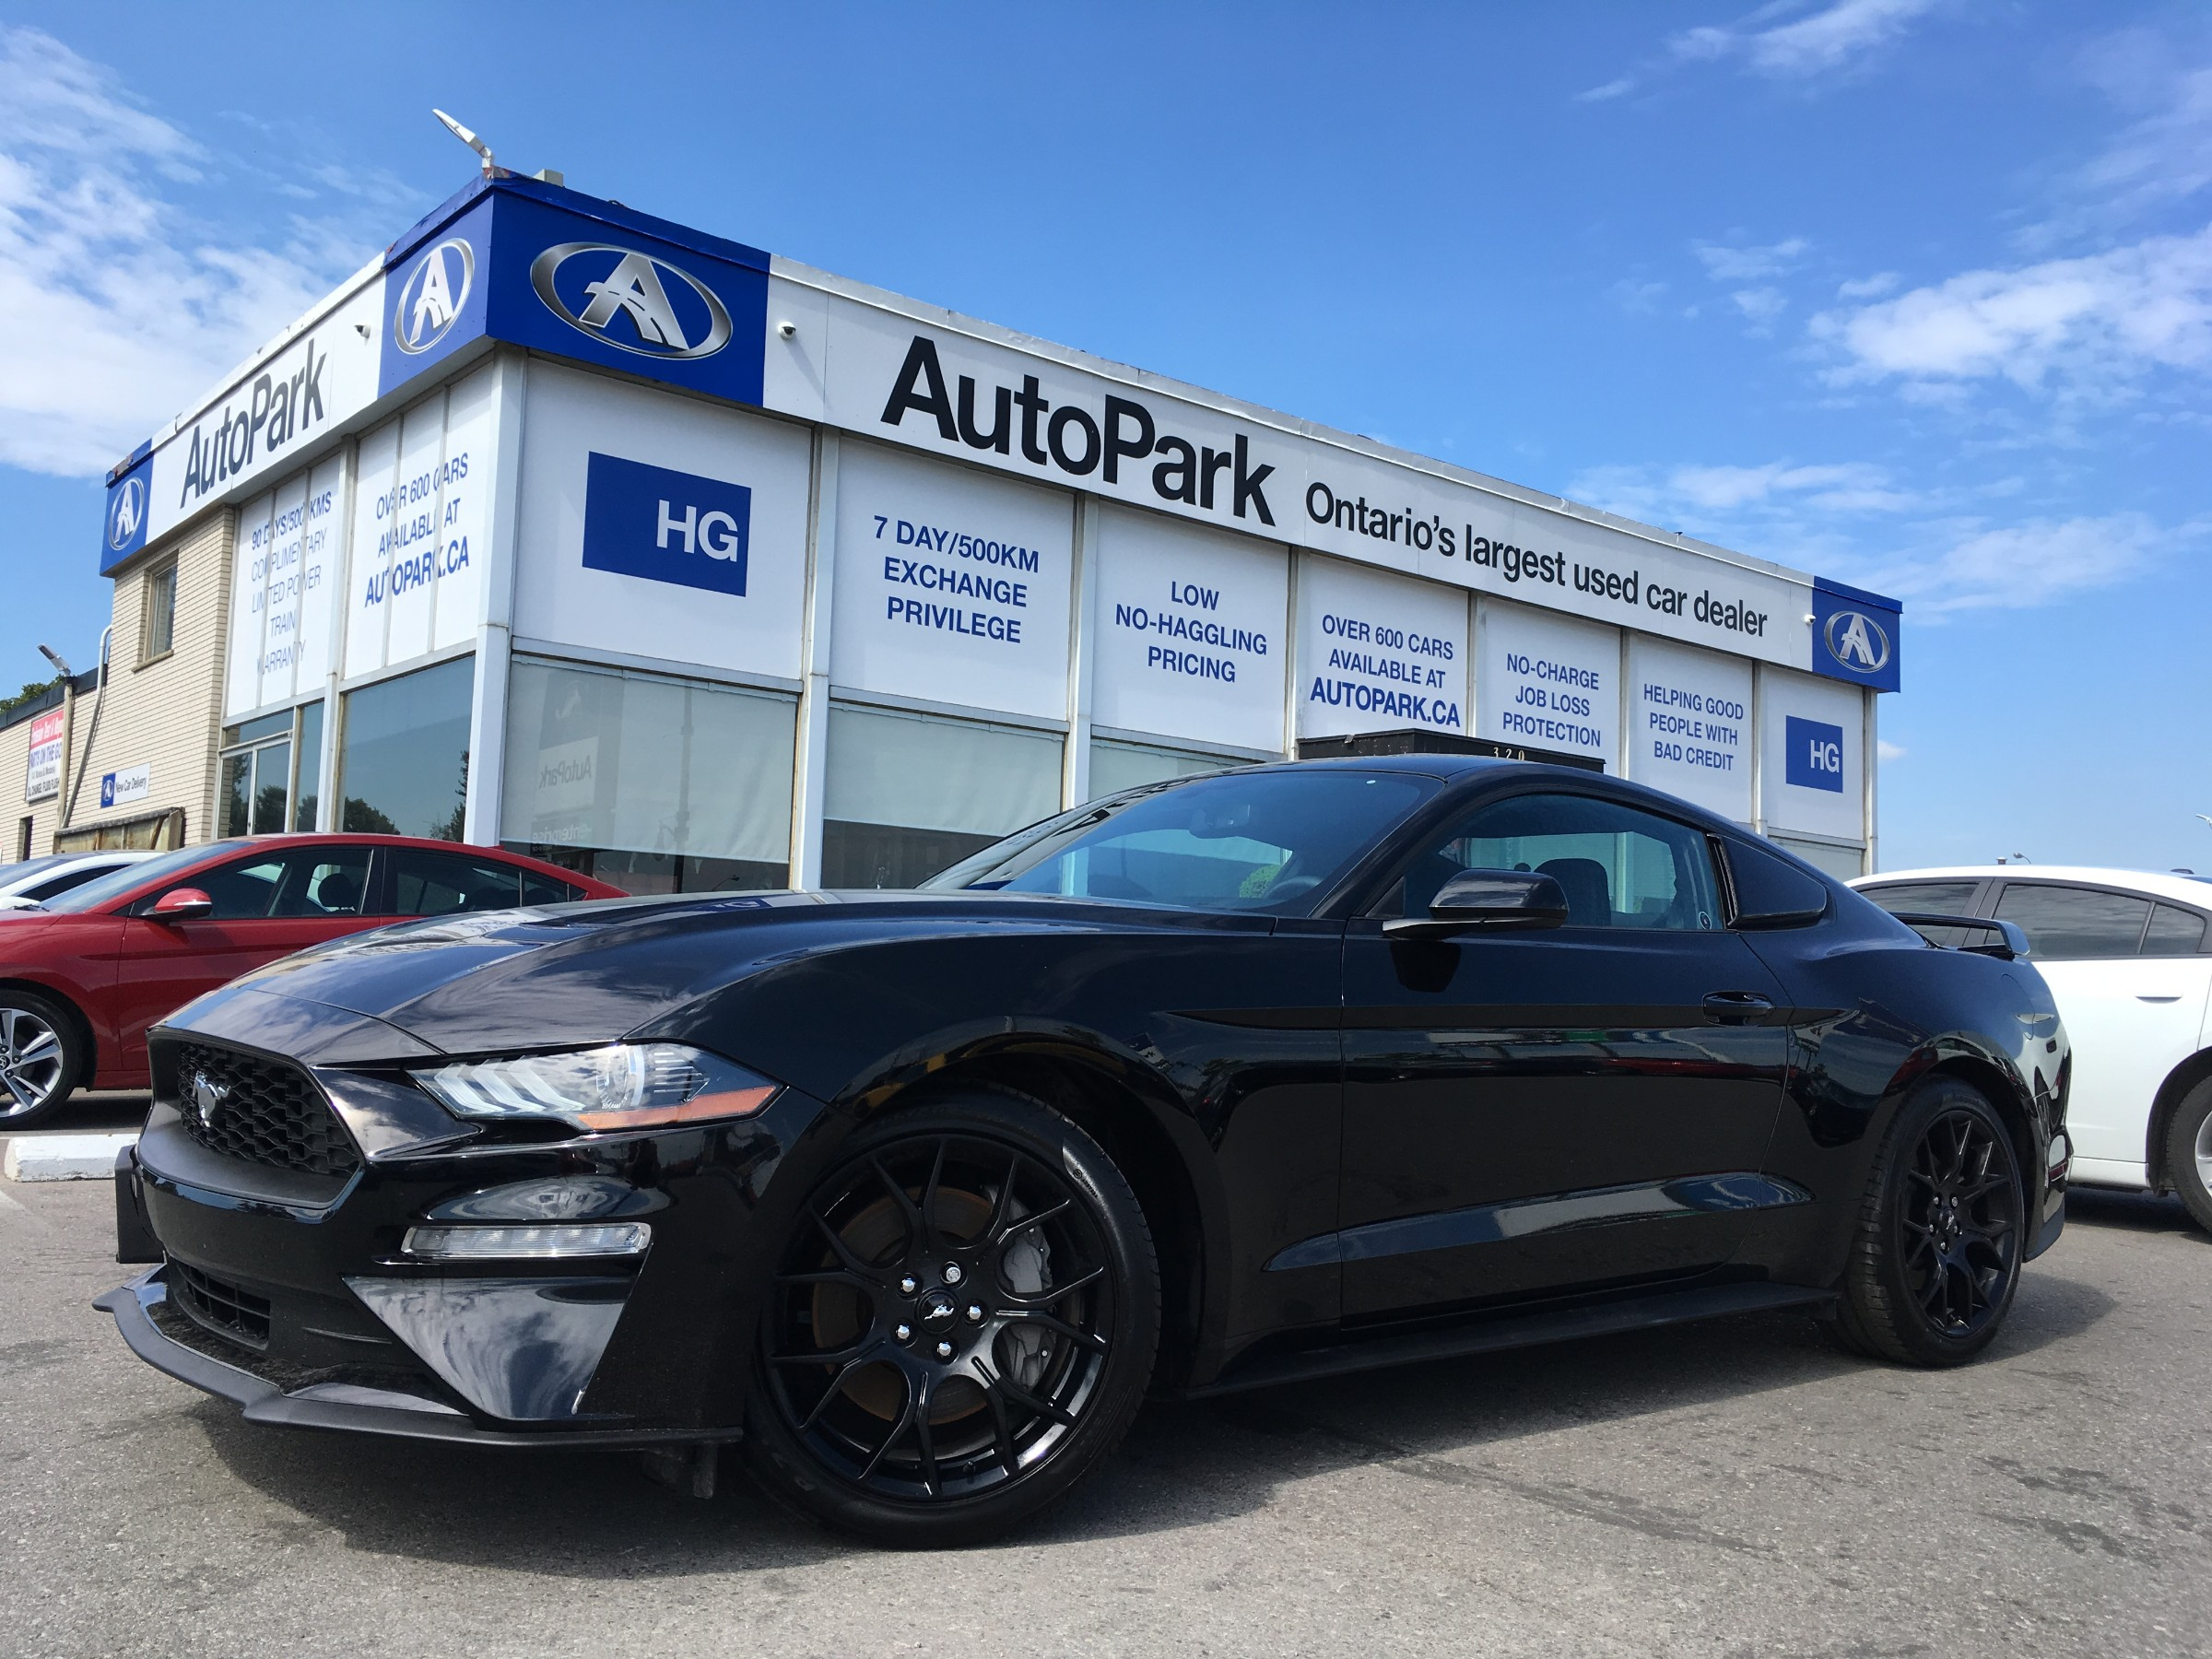 Used Ford Mustang For Sale Kitchener, ON - CarGurus